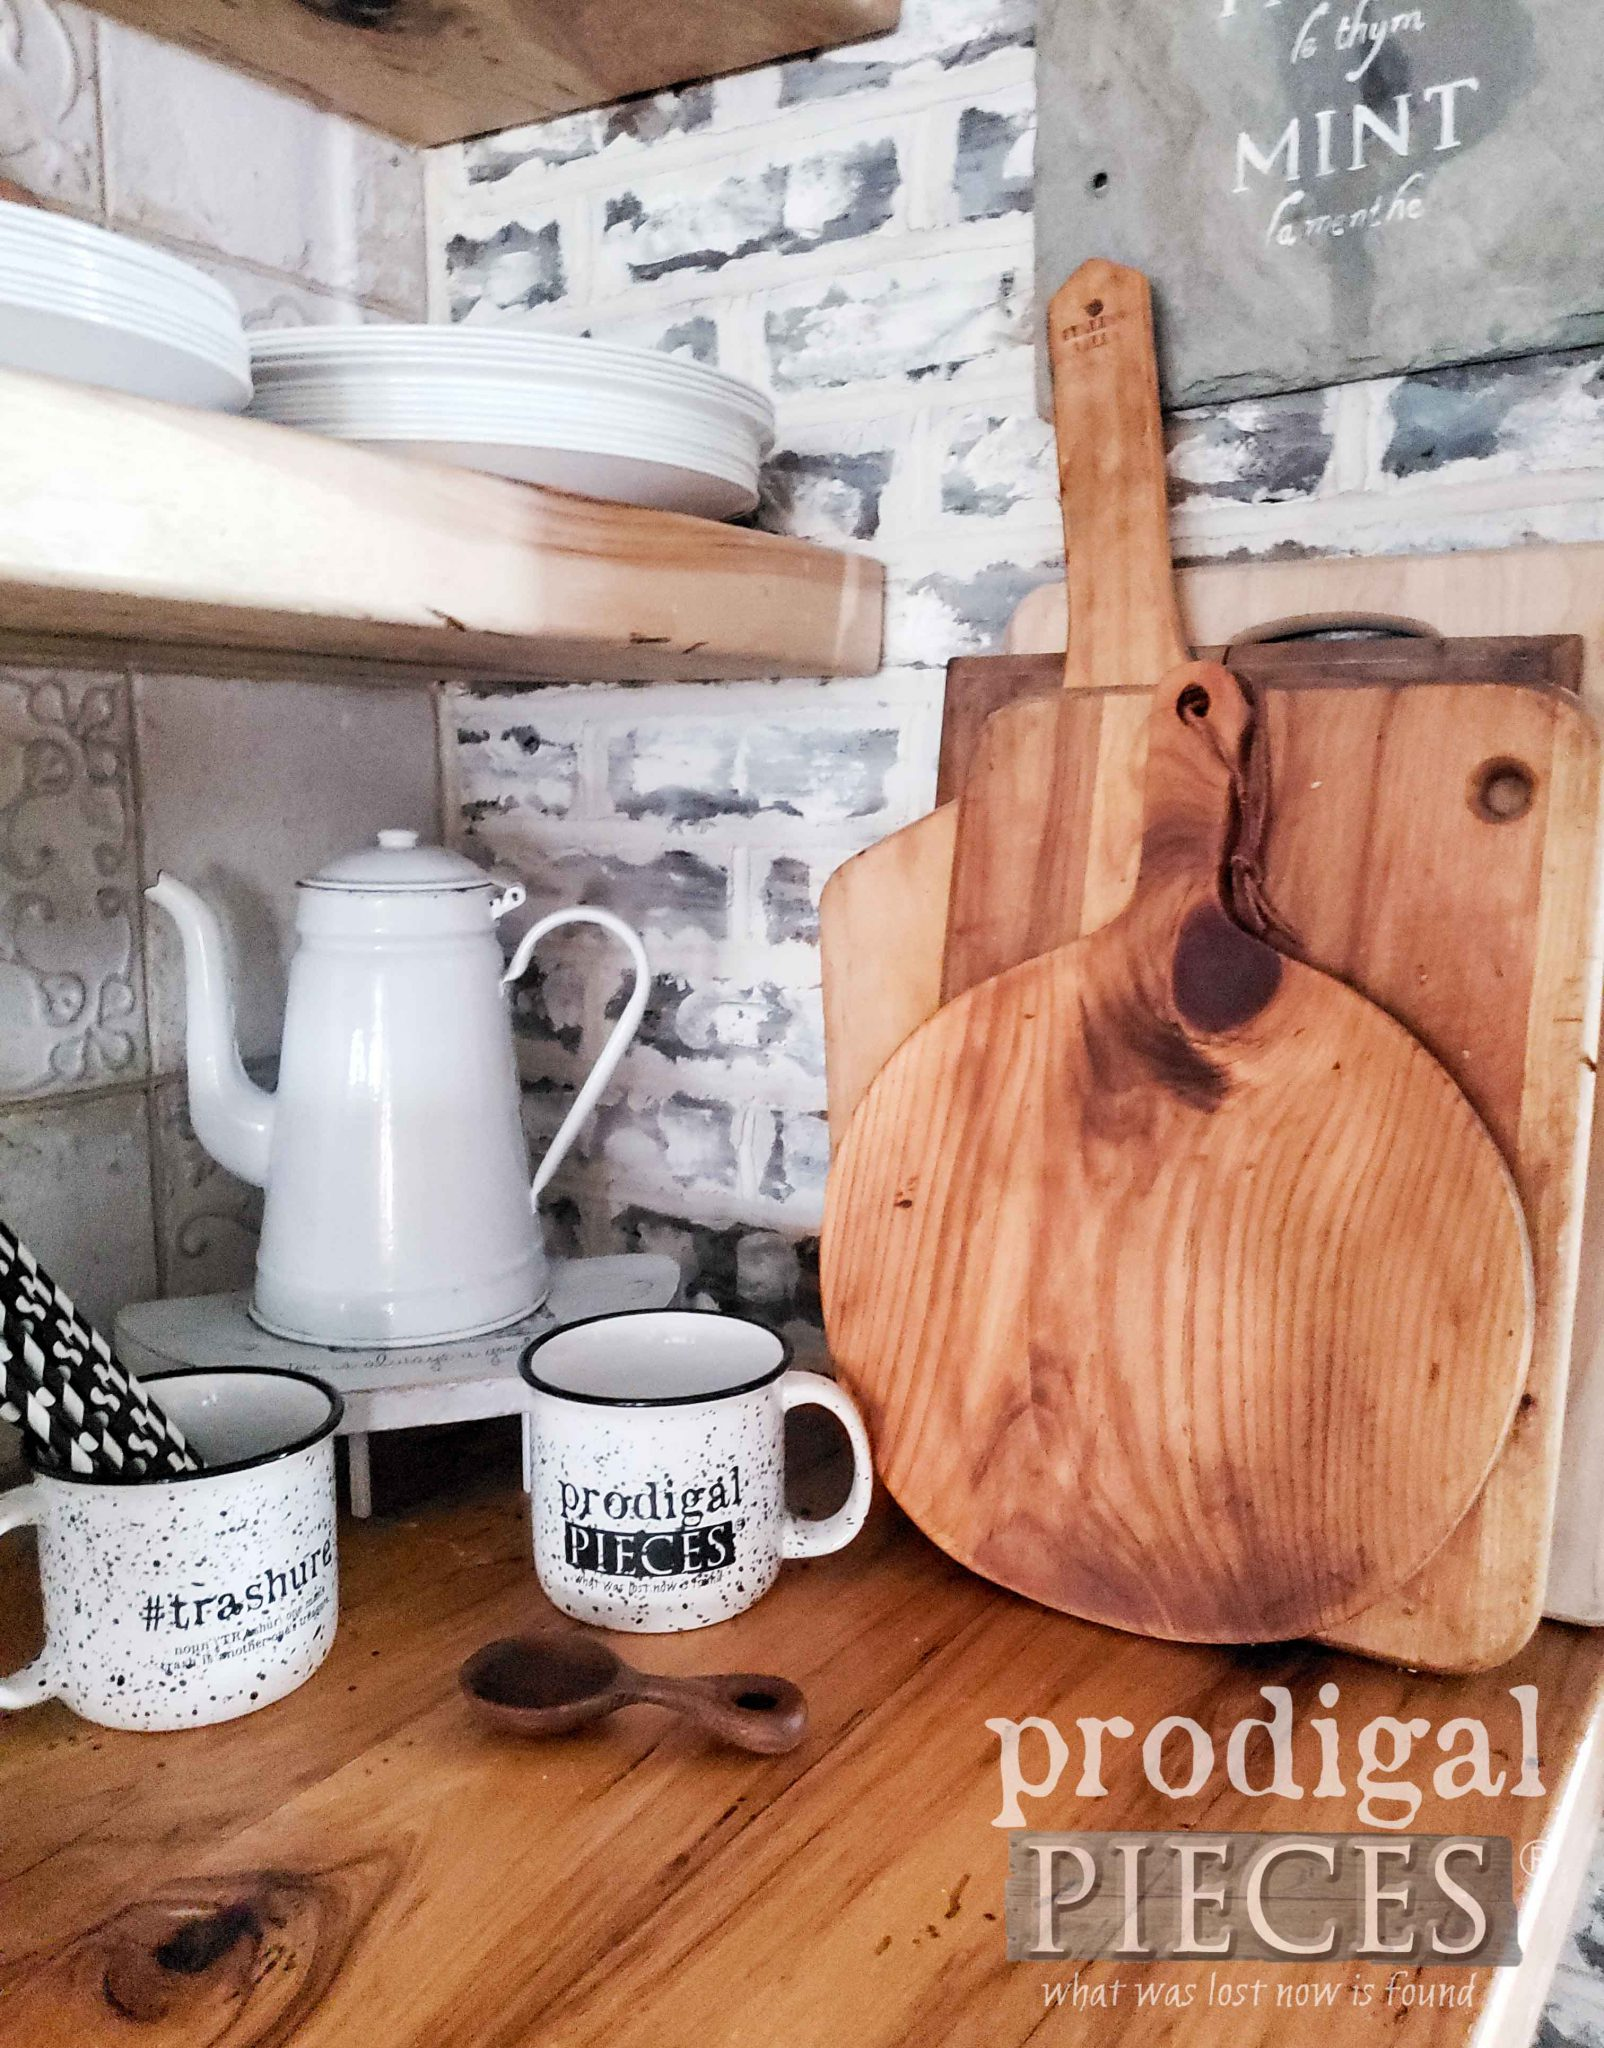 Farmhouse Cutting Board Collection by Larissa of Prodigal Pieces | prodigalpieces.com #prodigalpieces #farmhouse #diy #home #homedecor